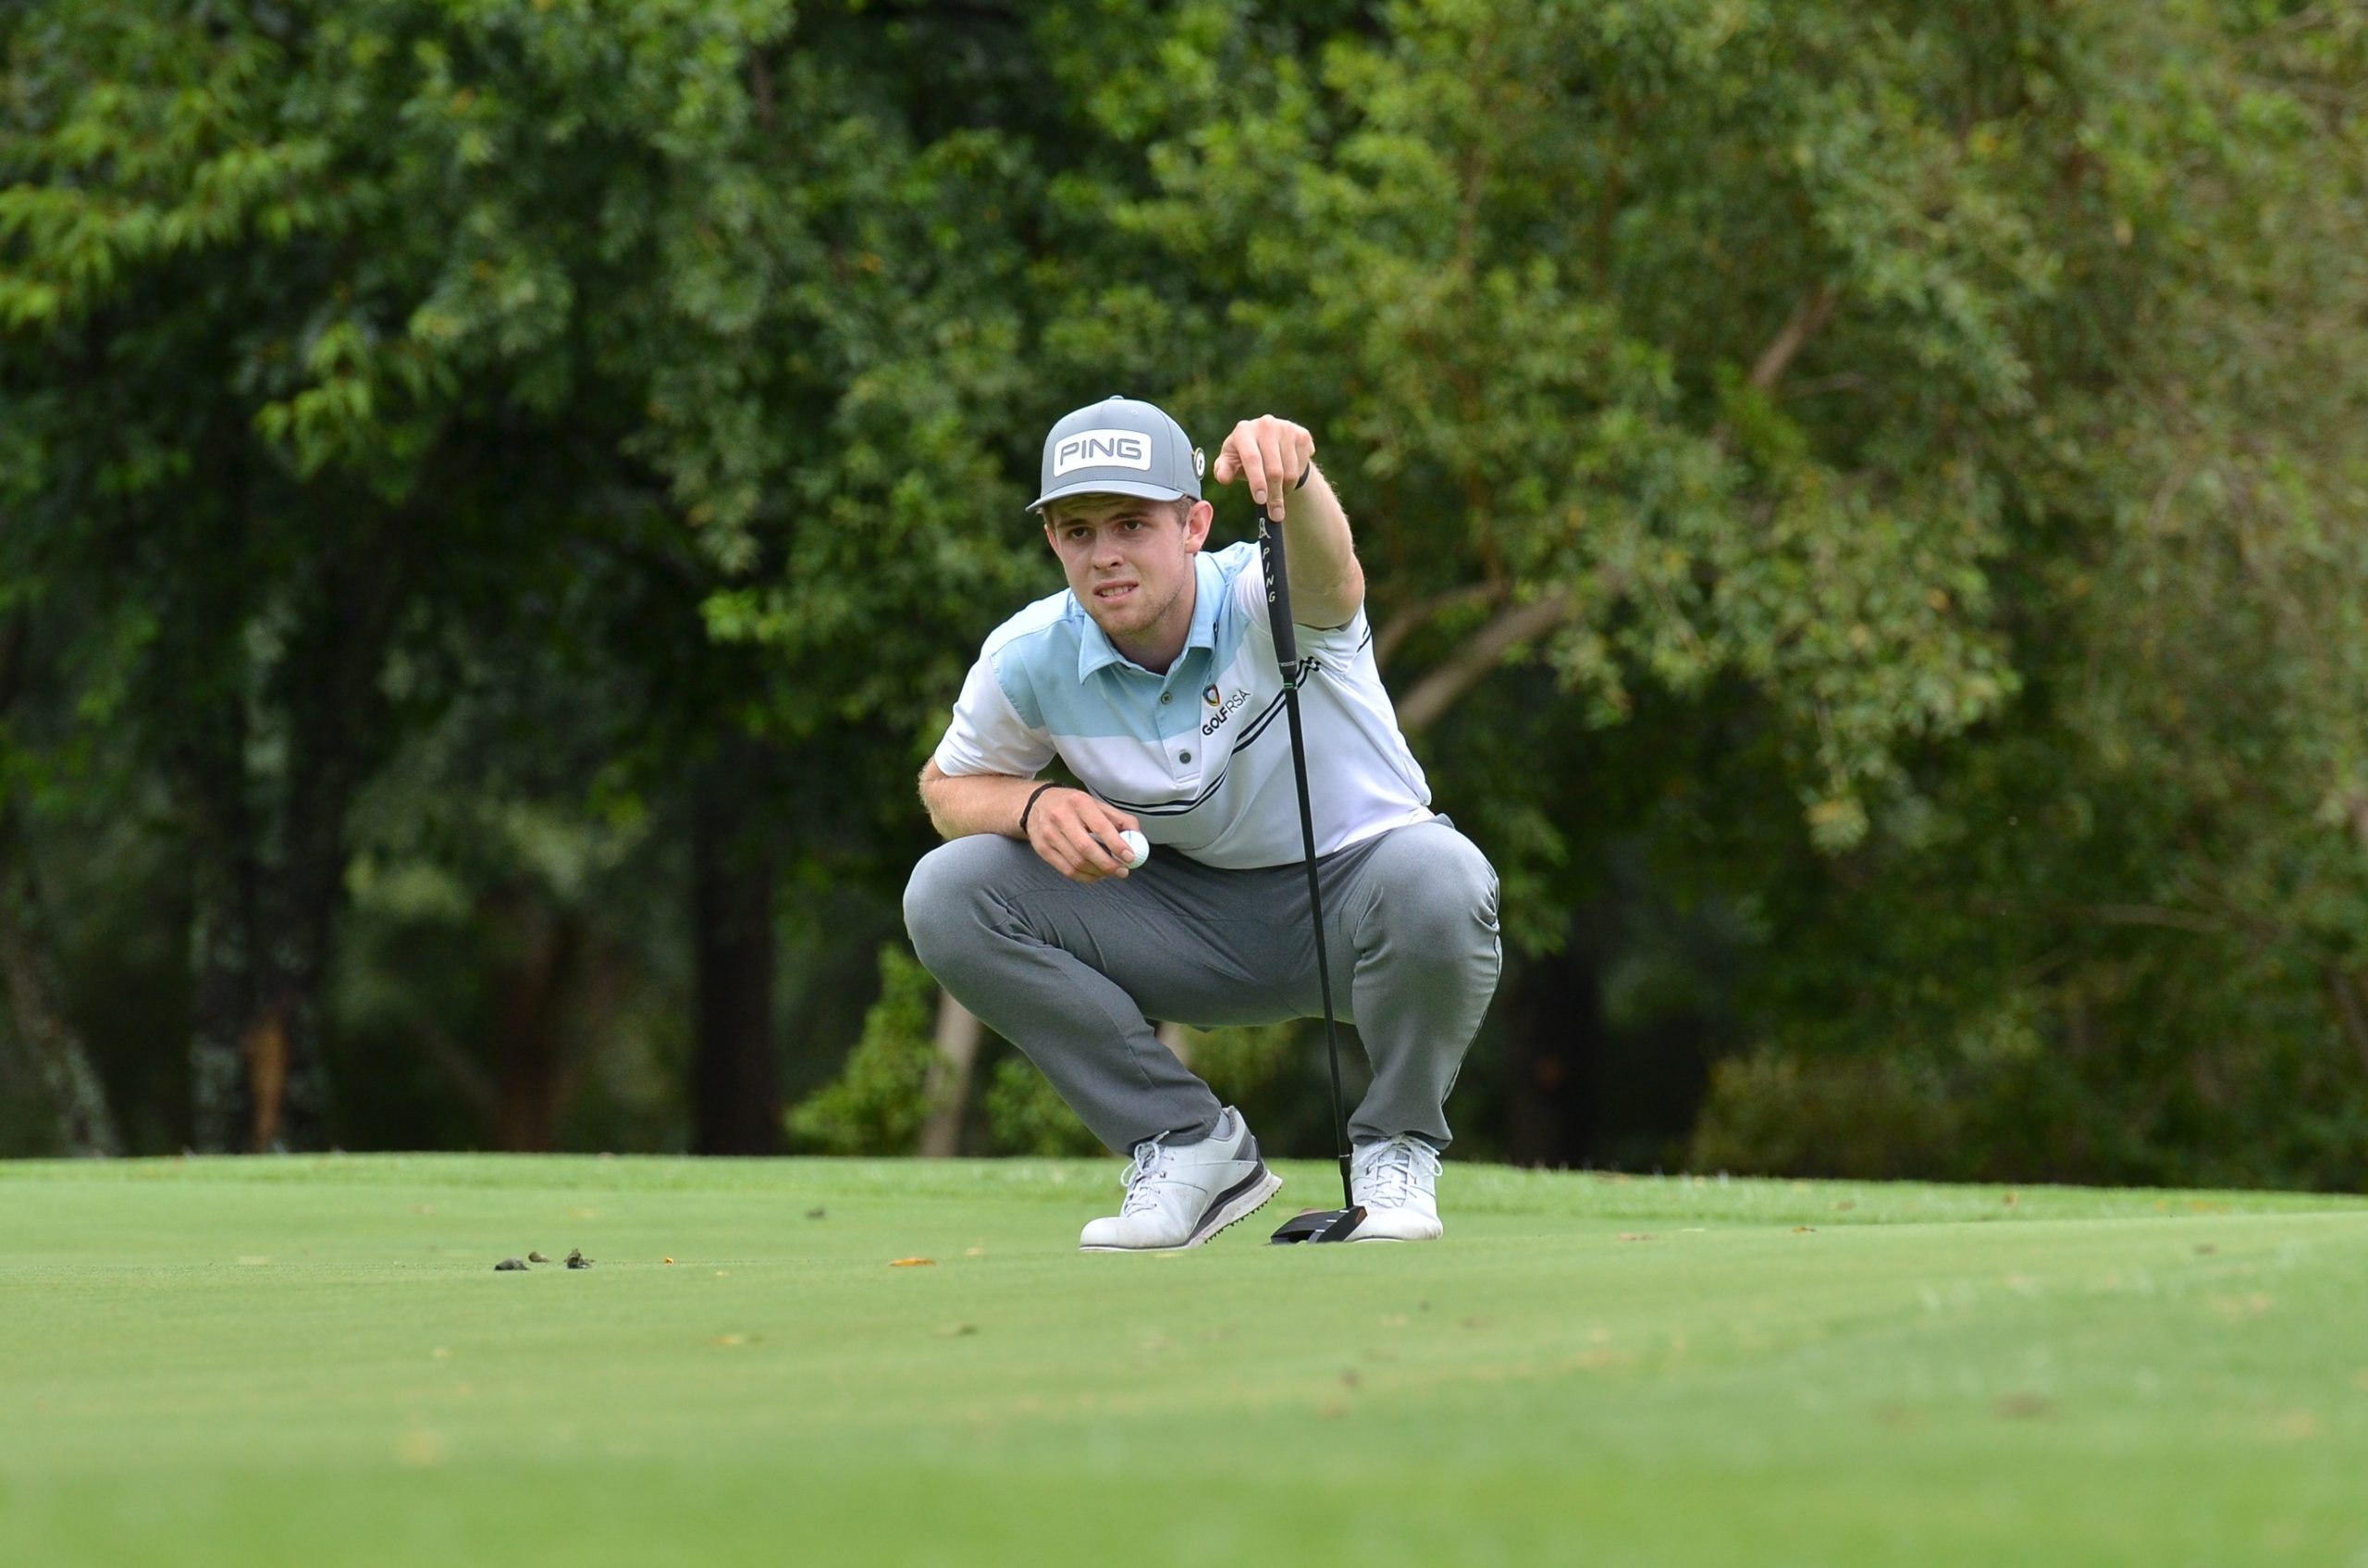 Unflappable Vorster on course for SA Stroke Play glory